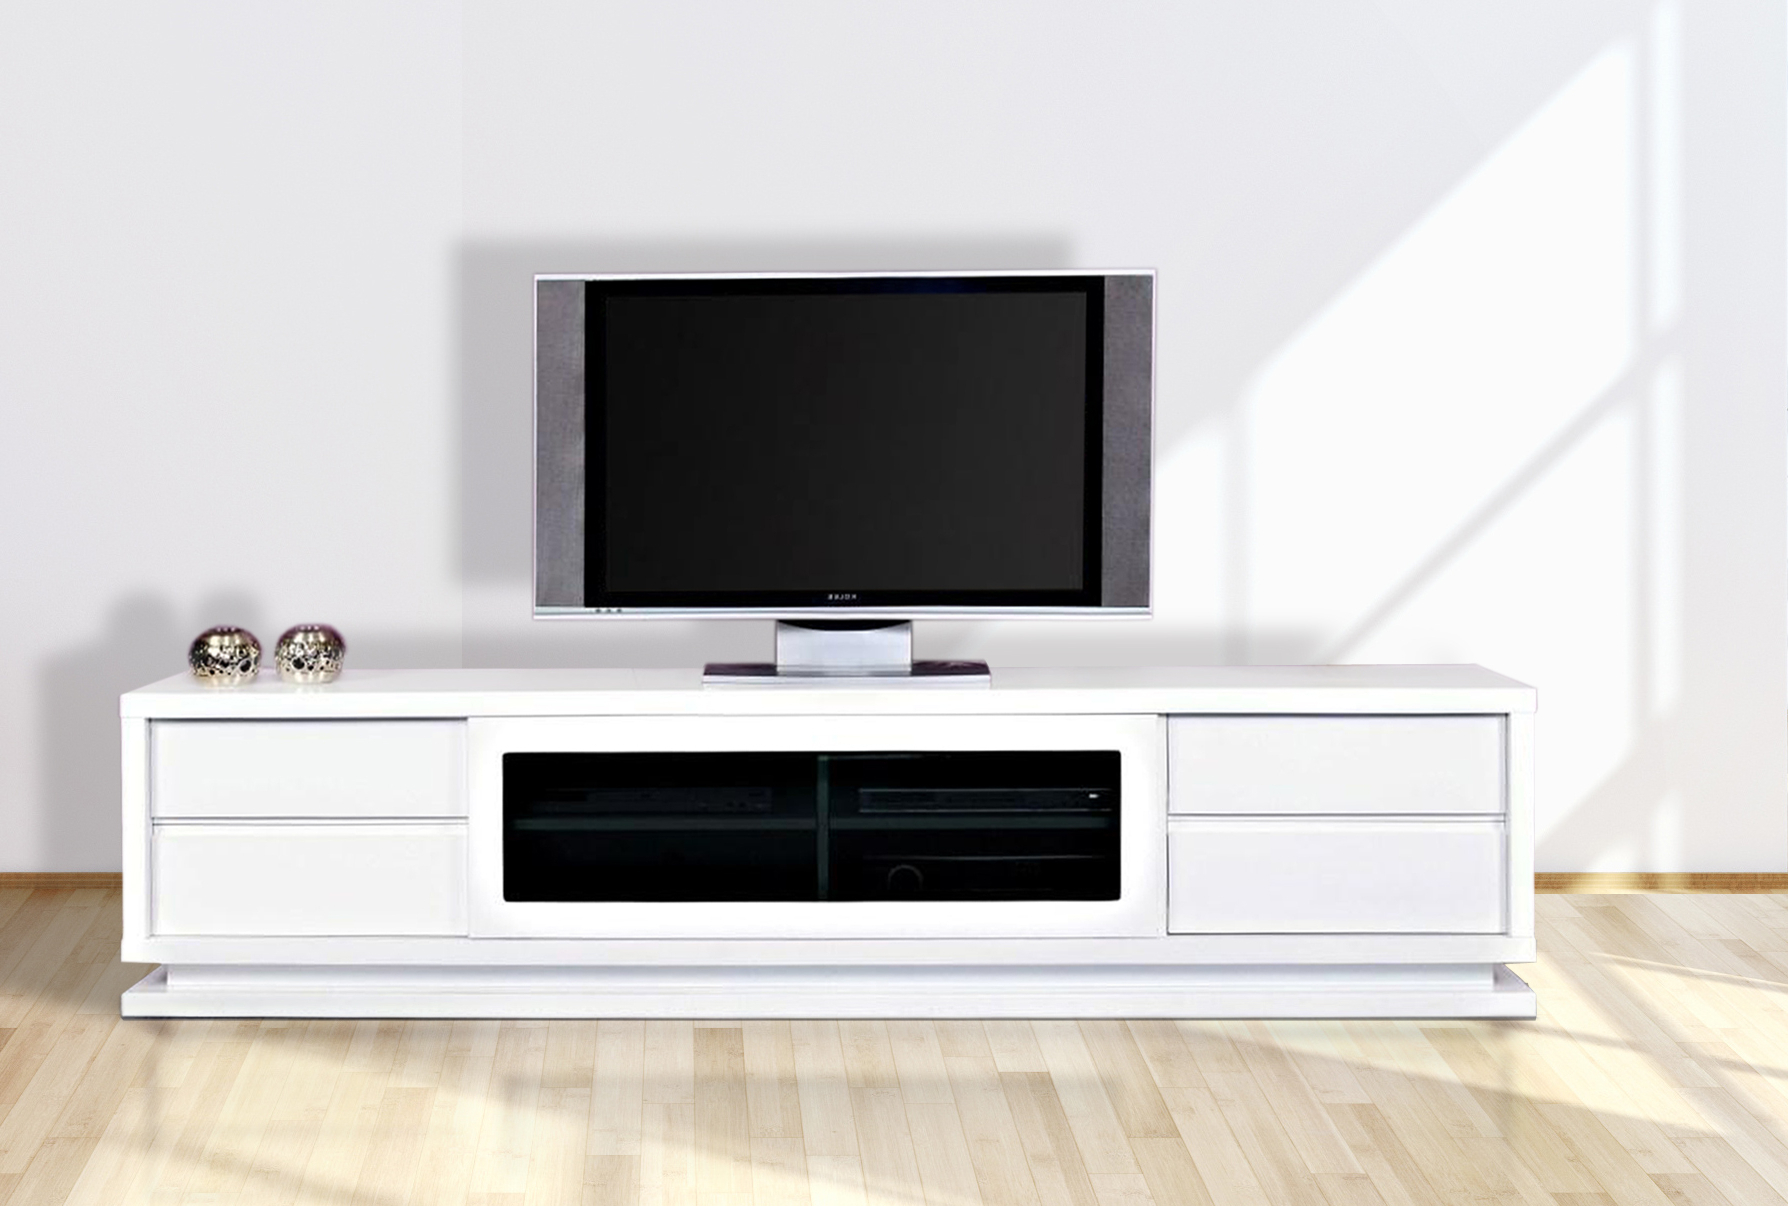 Gloss White Tv Unit 2.4M, The Preston – First In Furniture With Regard To Well Known Gloss White Tv Cabinets (Gallery 16 of 20)